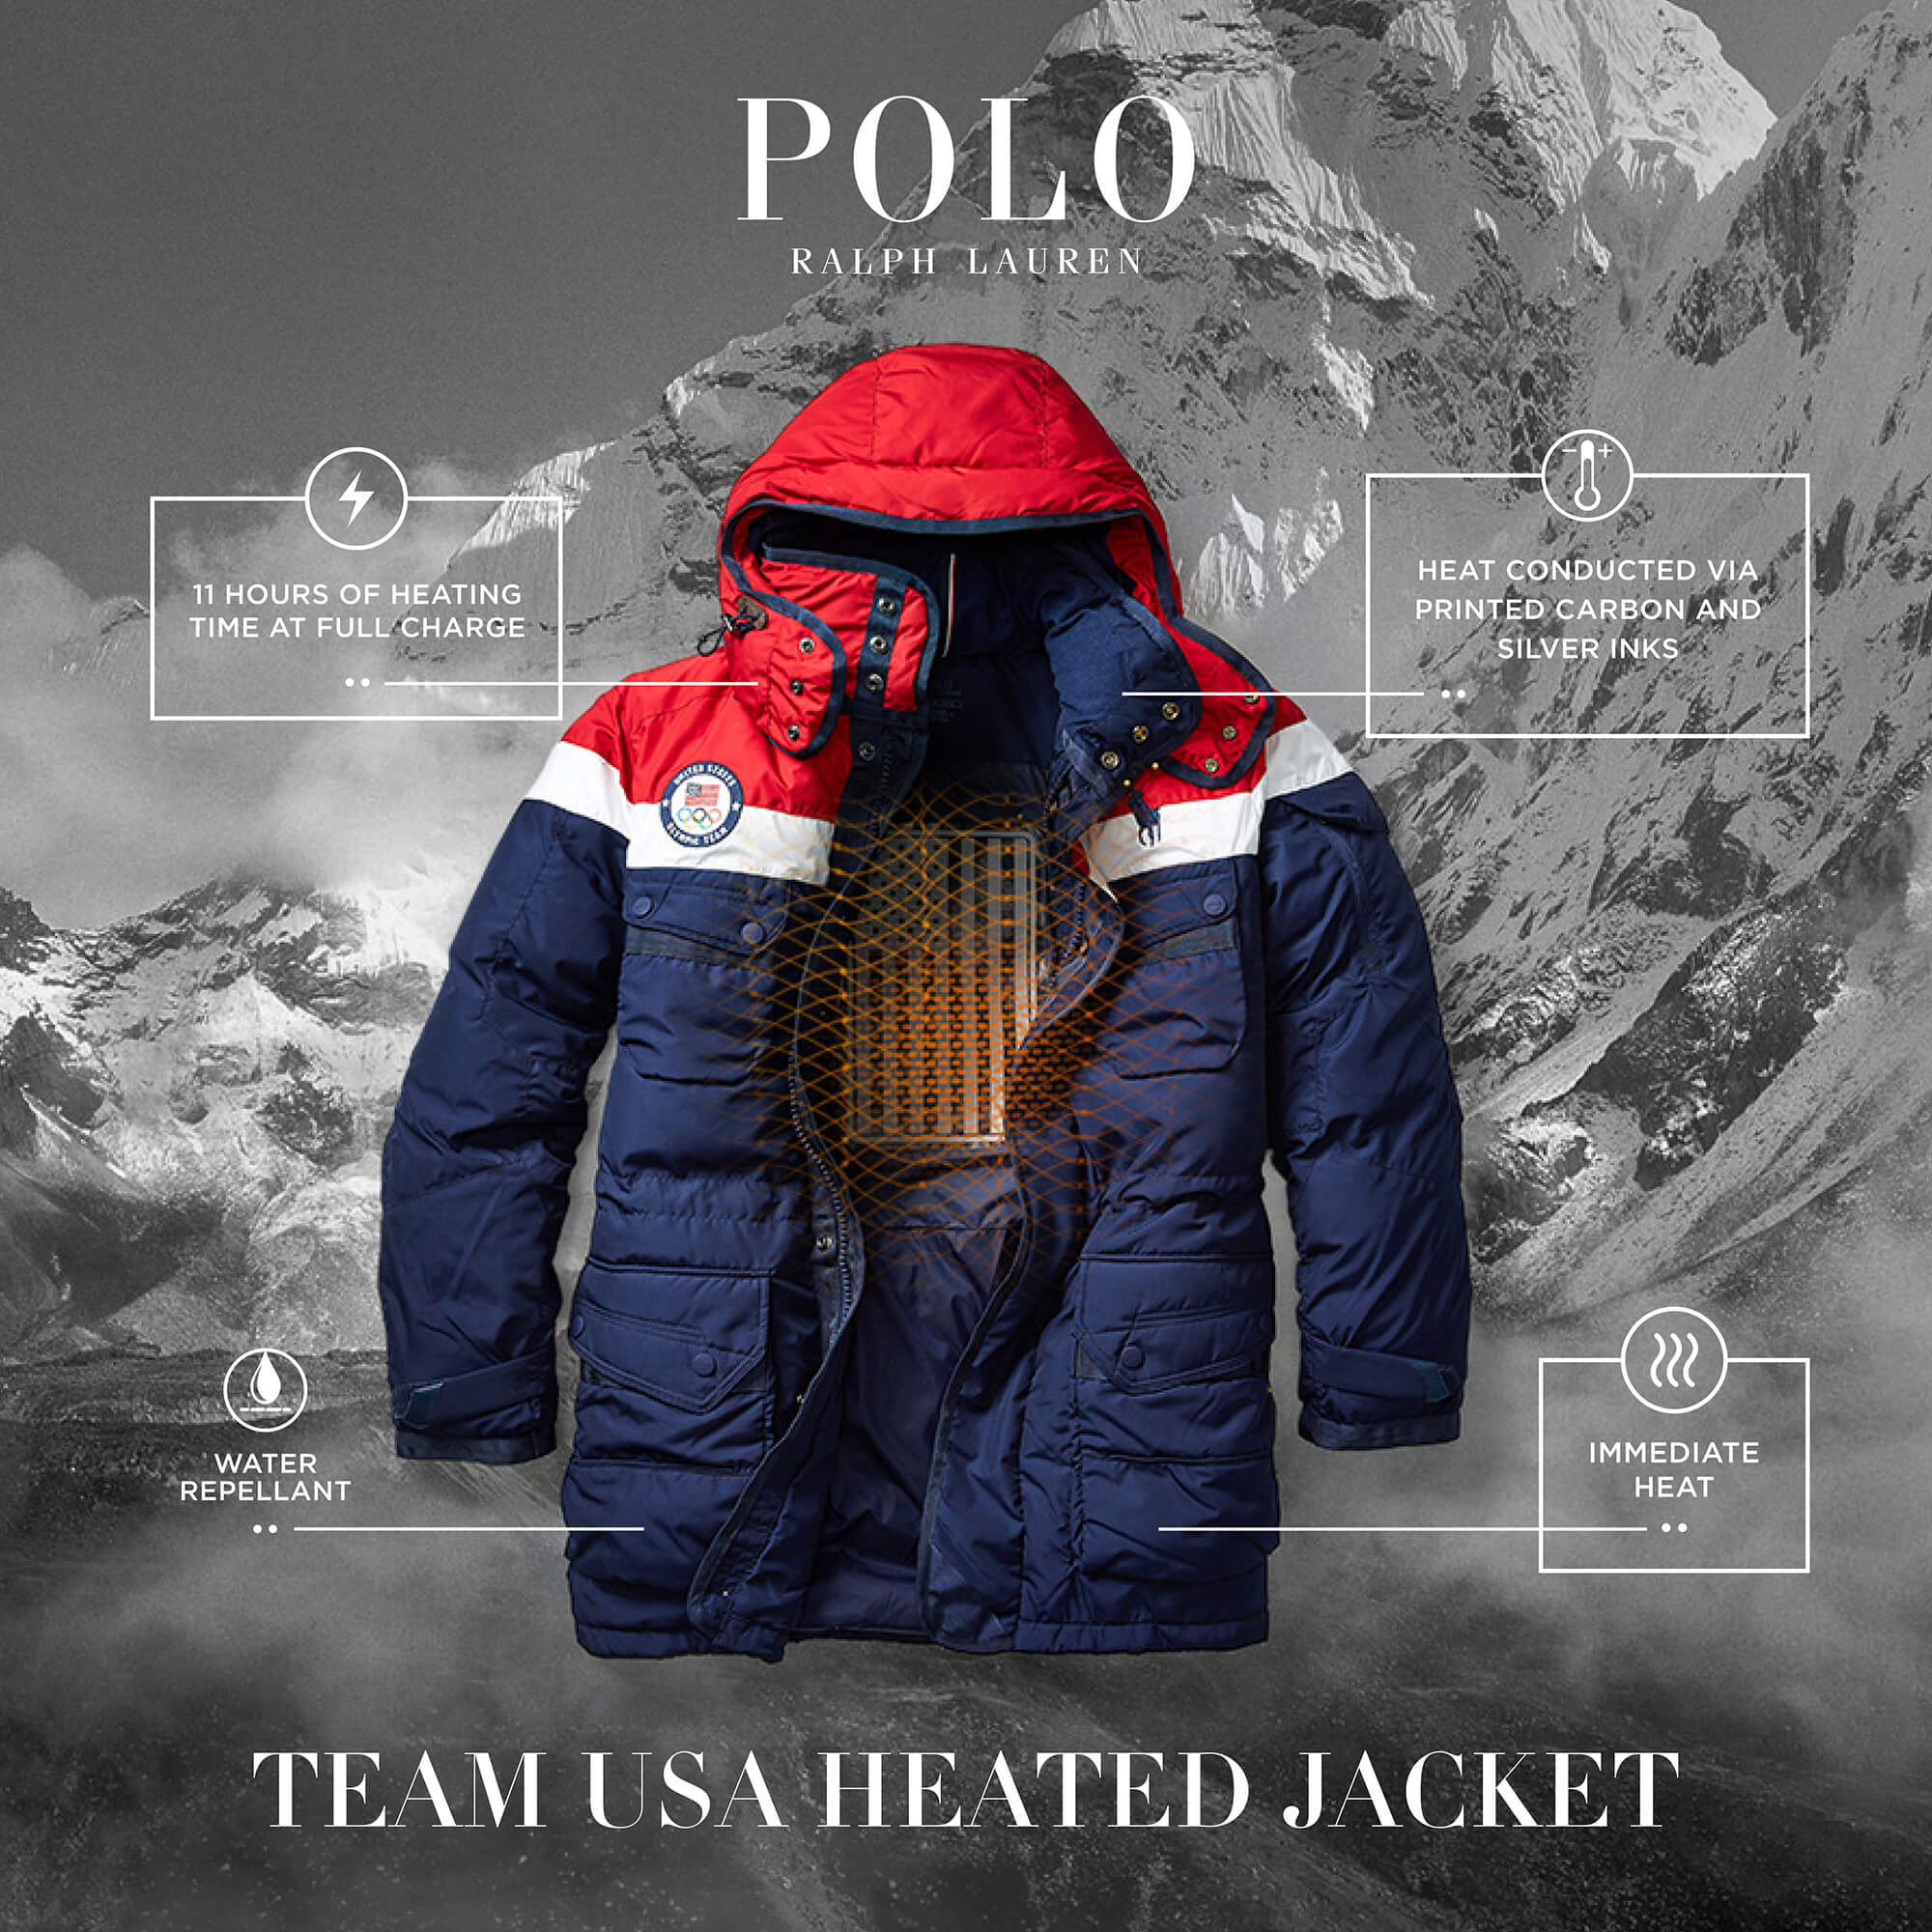 Ralph Lauren deploys wearable tech for Team USA's Winter Olympics uniform